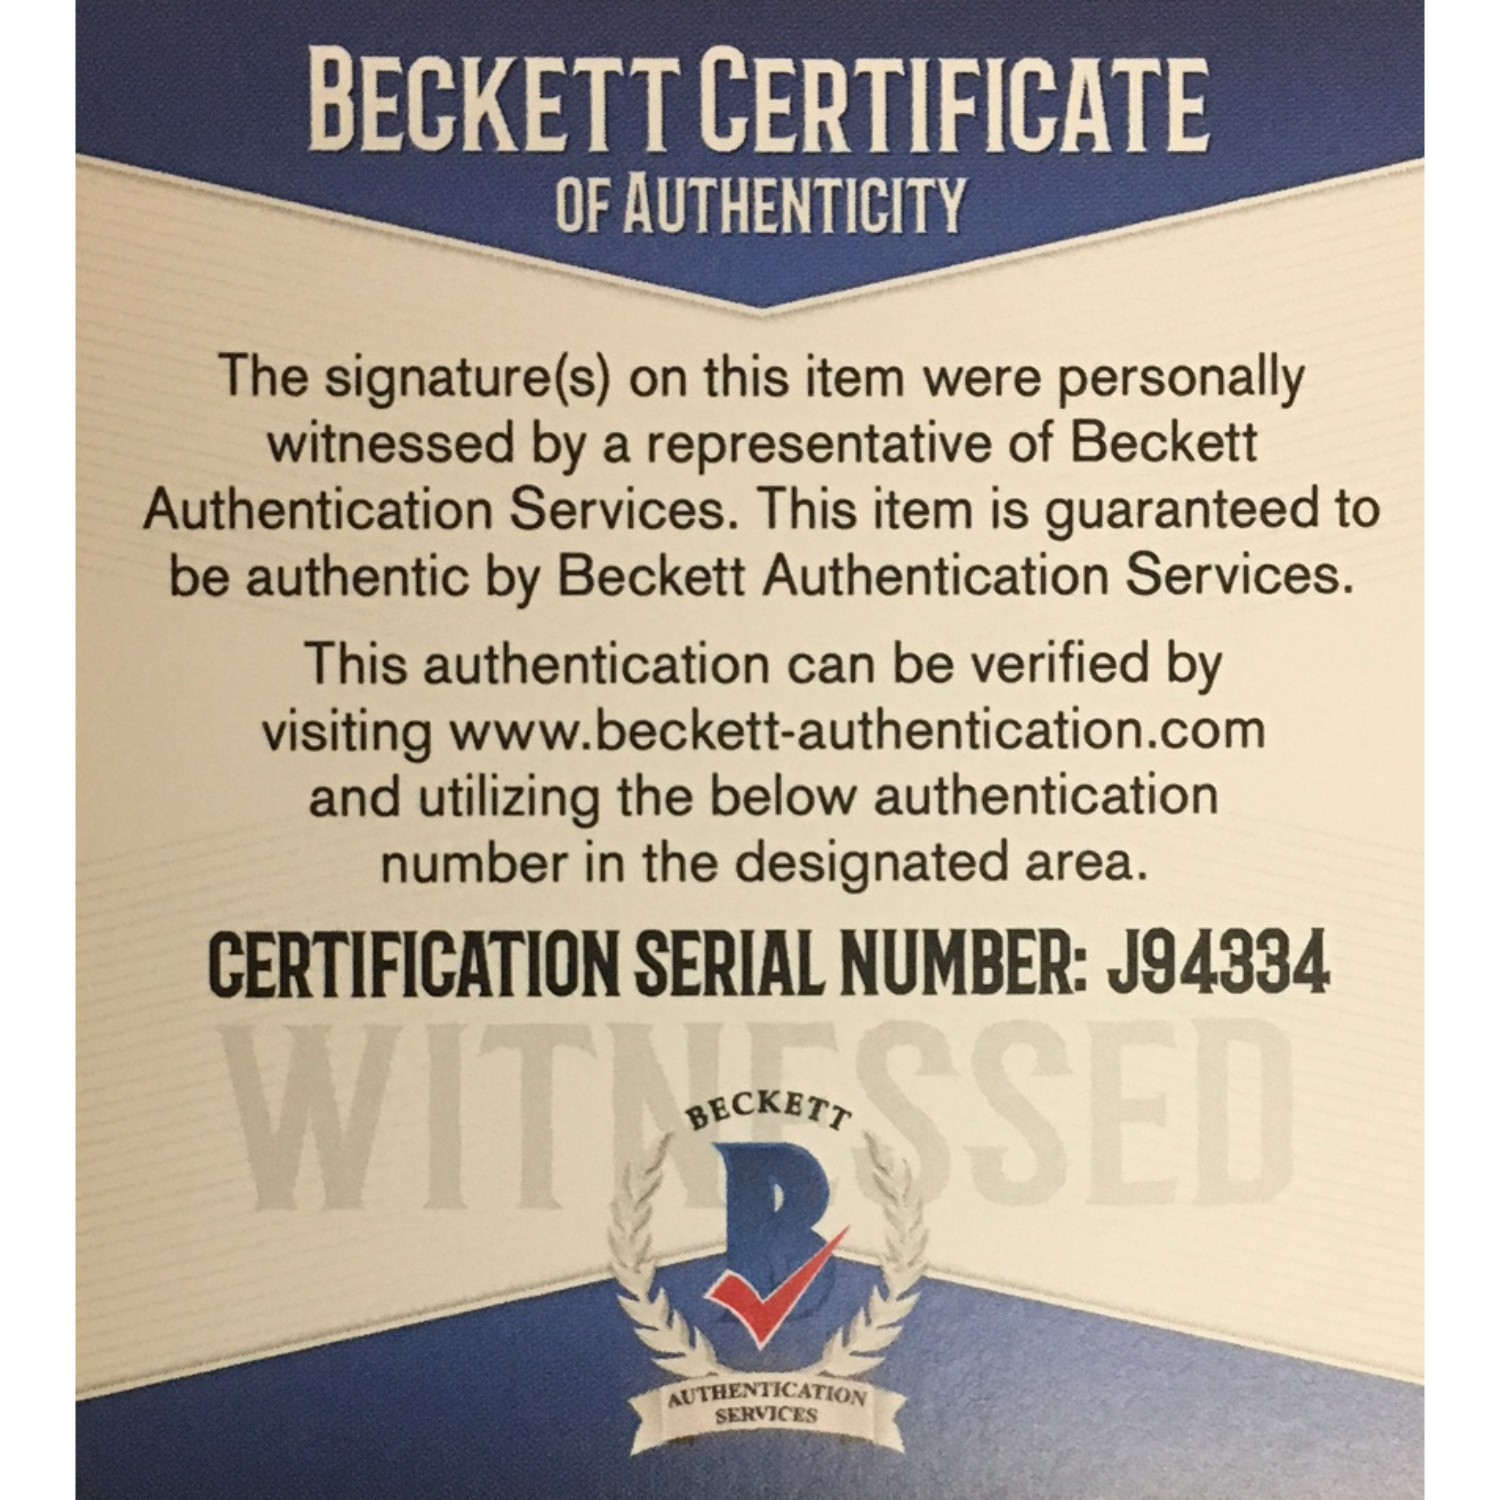 5a0b93f232c8 Lonzo Ball Autographed Los Angeles Lakers Signed Basketball Jersey Beckett  BAS COA 2